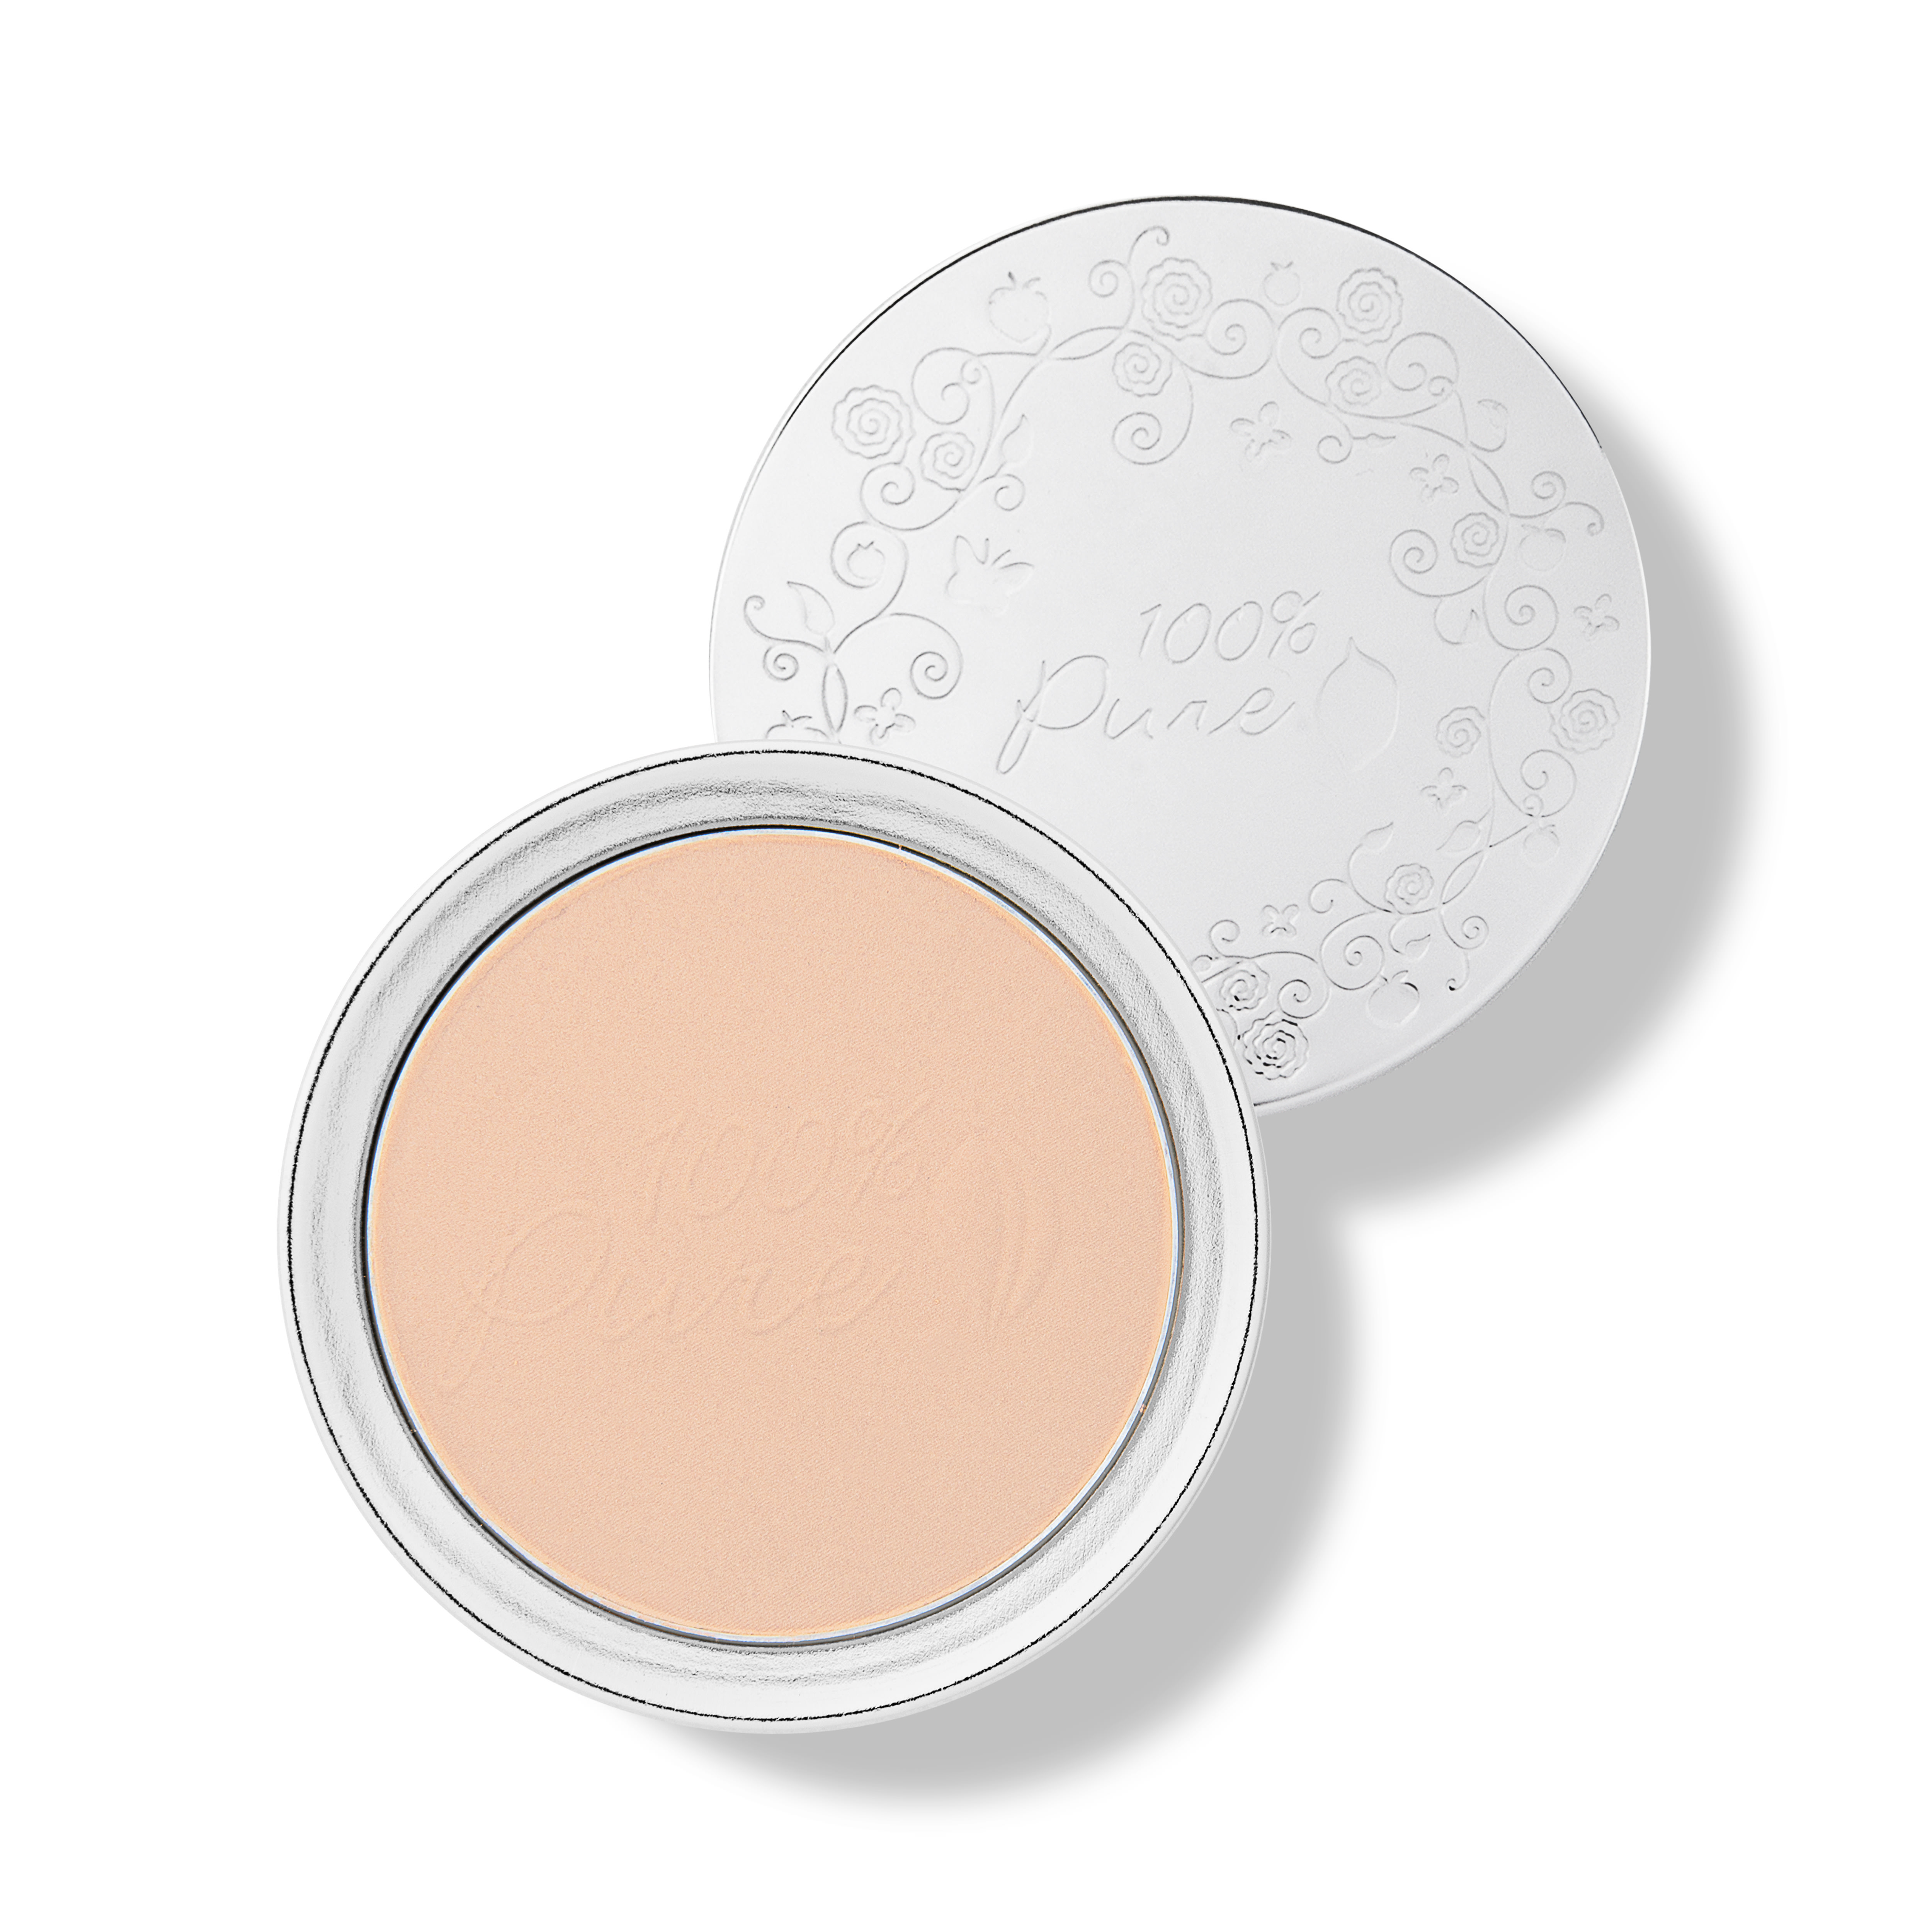 Product Grid - Fruit Pigmented® Powder Foundation